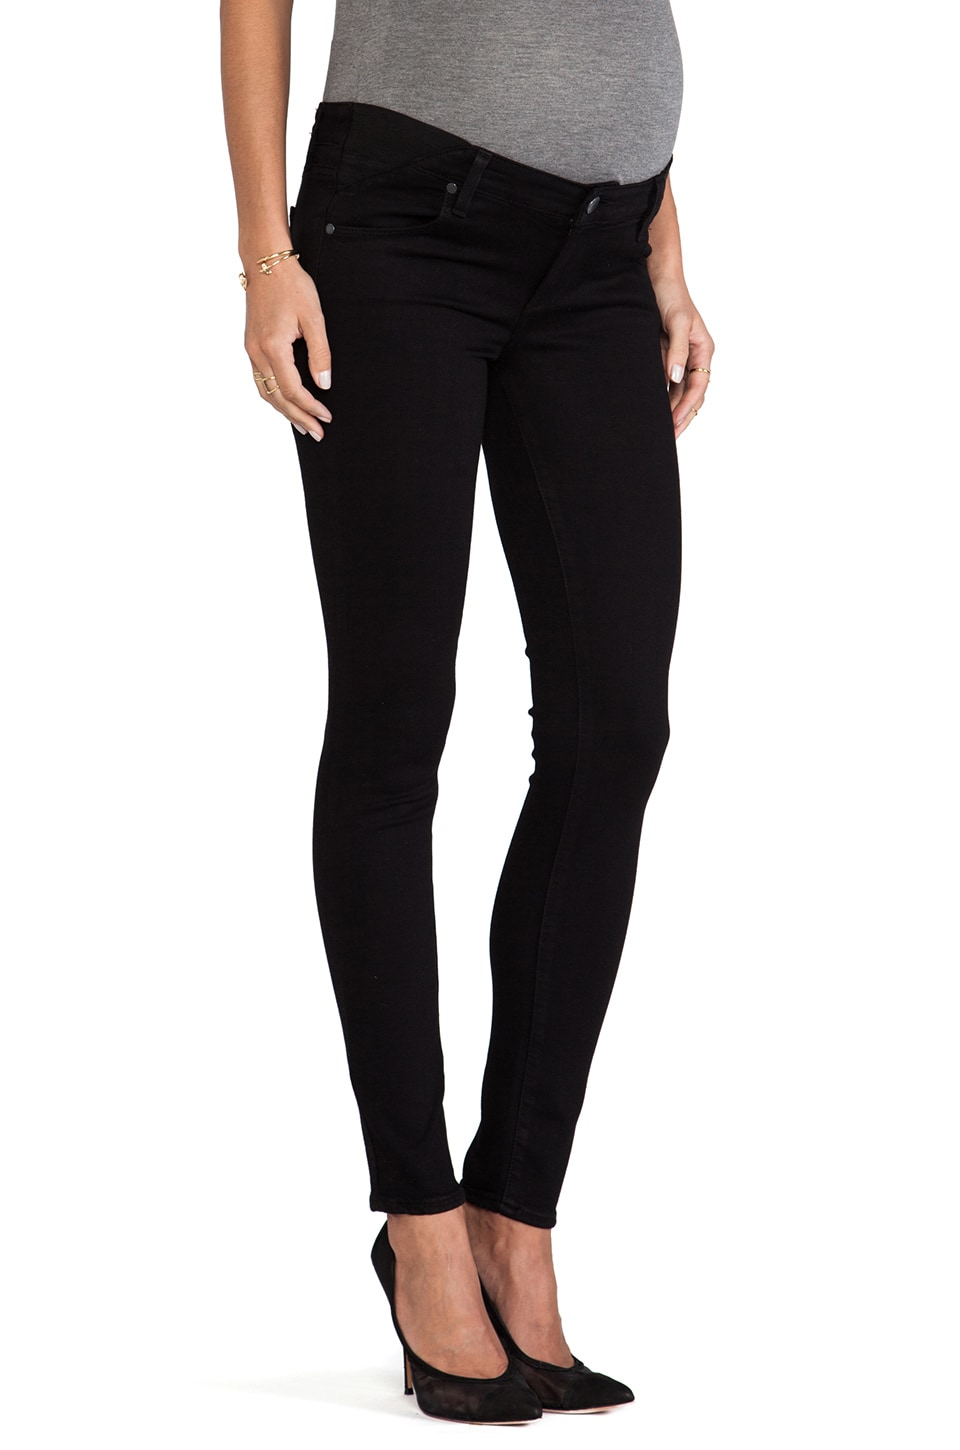 PAIGE Denim Verdugo Ultra Skinny Maternity in Black